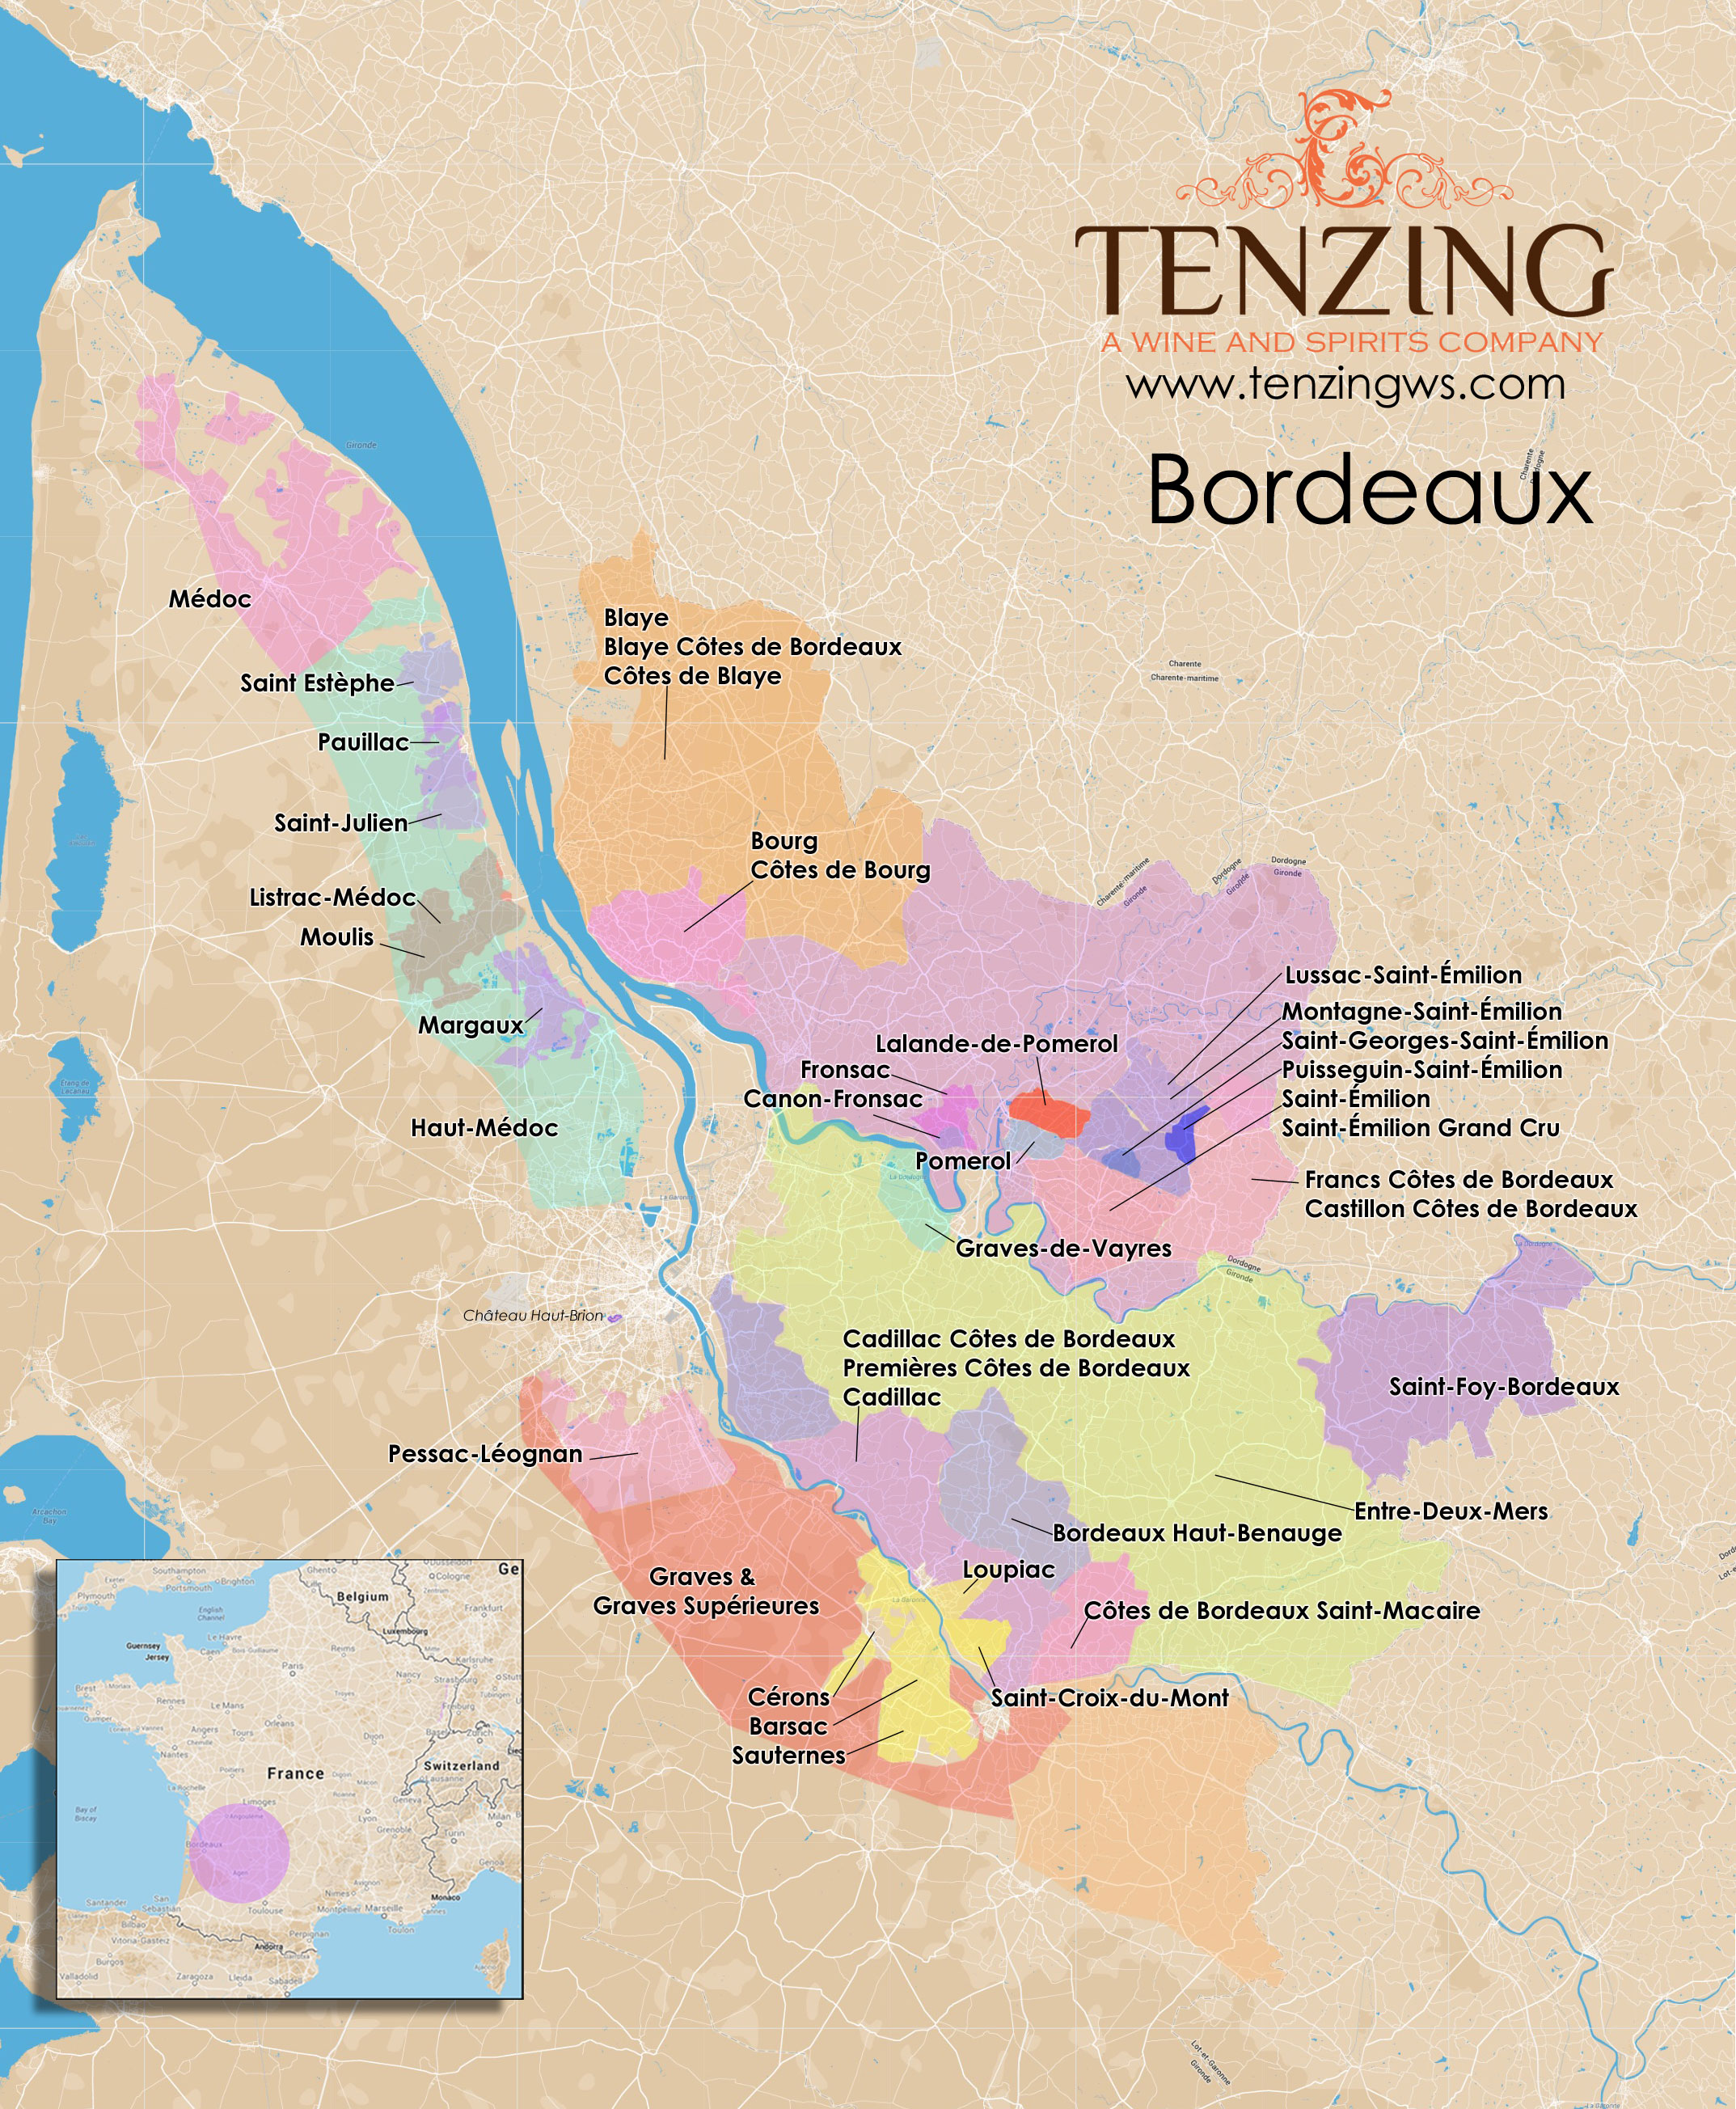 Click image to enlarge - Bordeaux Map